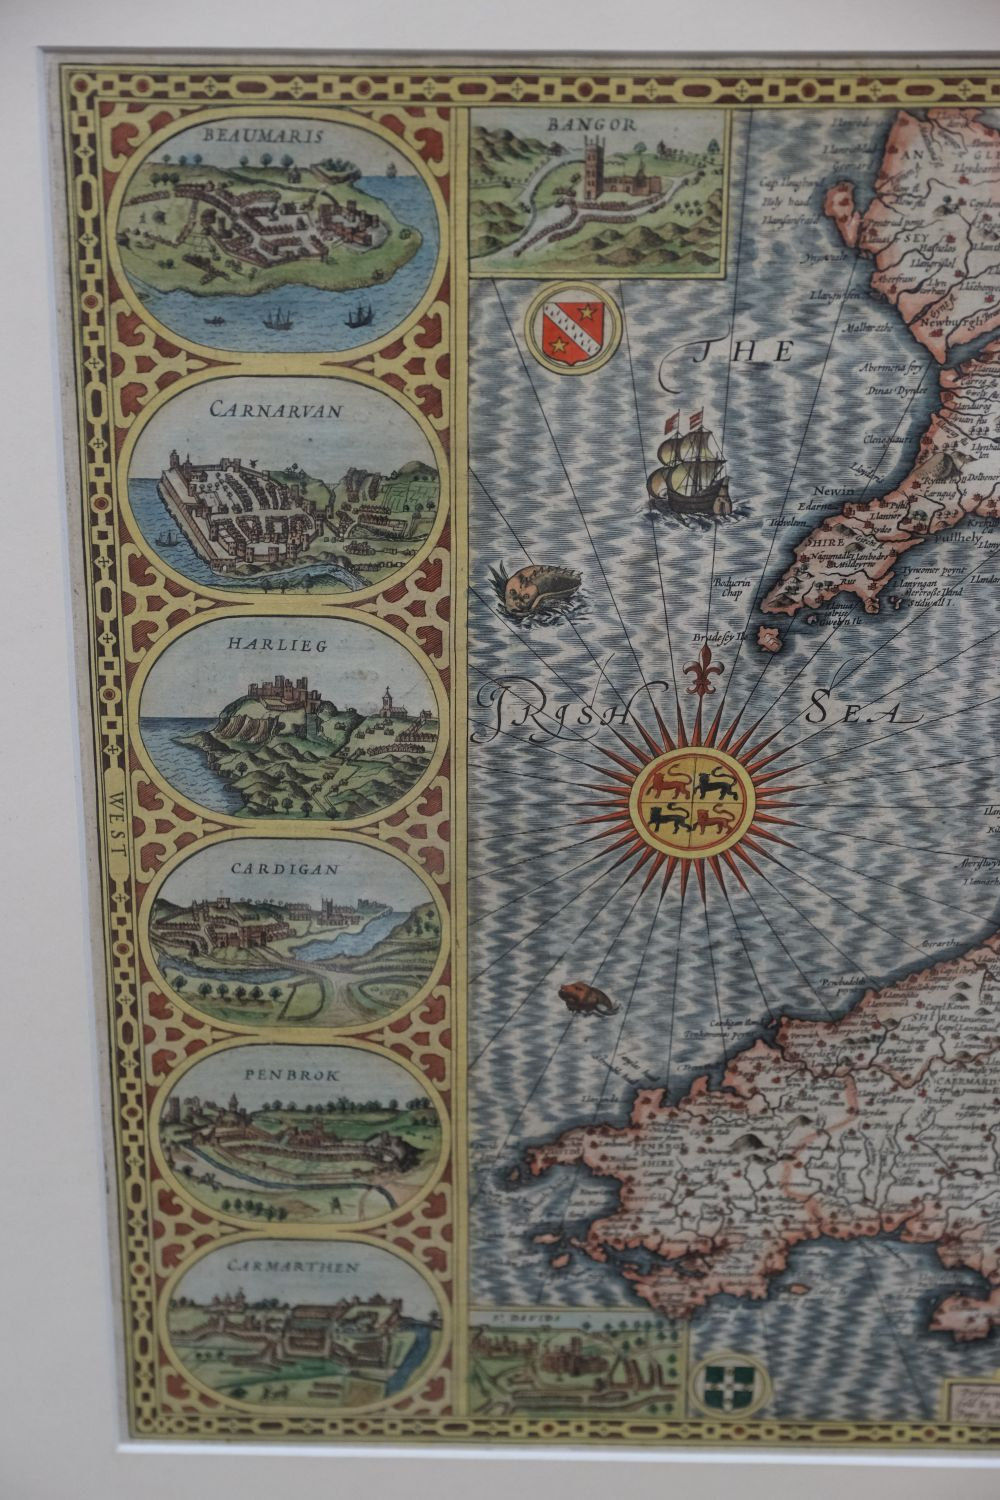 * Wales. Speed (John), Wales, John Sudbury & George Humble, 1616 - Image 3 of 5